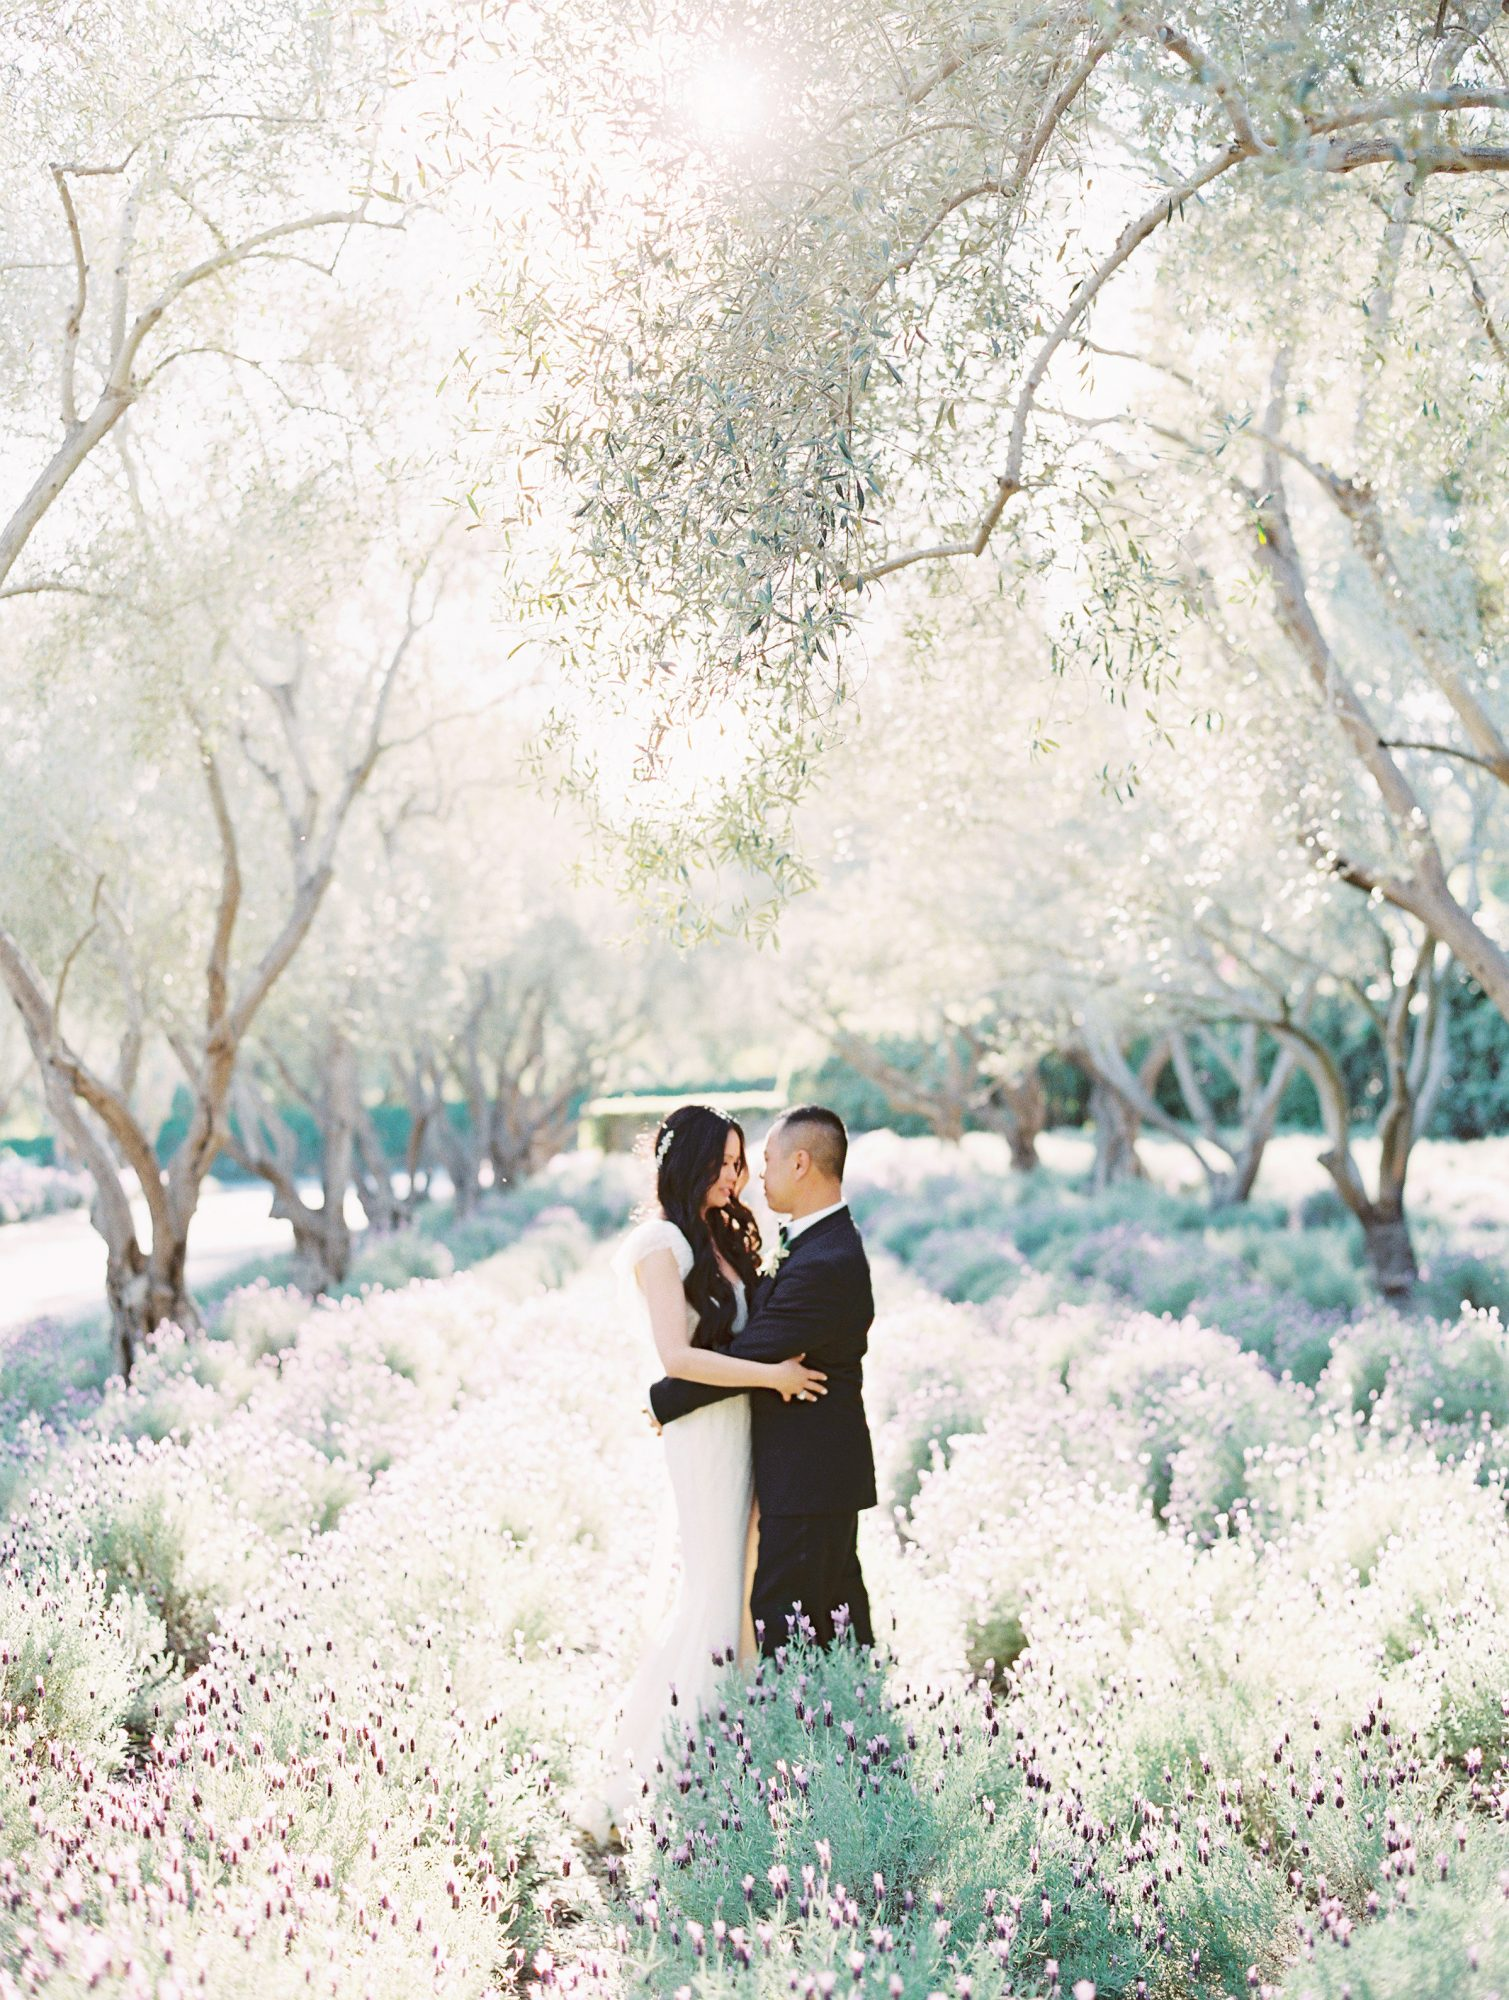 bride and groom standing under tree surrounded by flowers